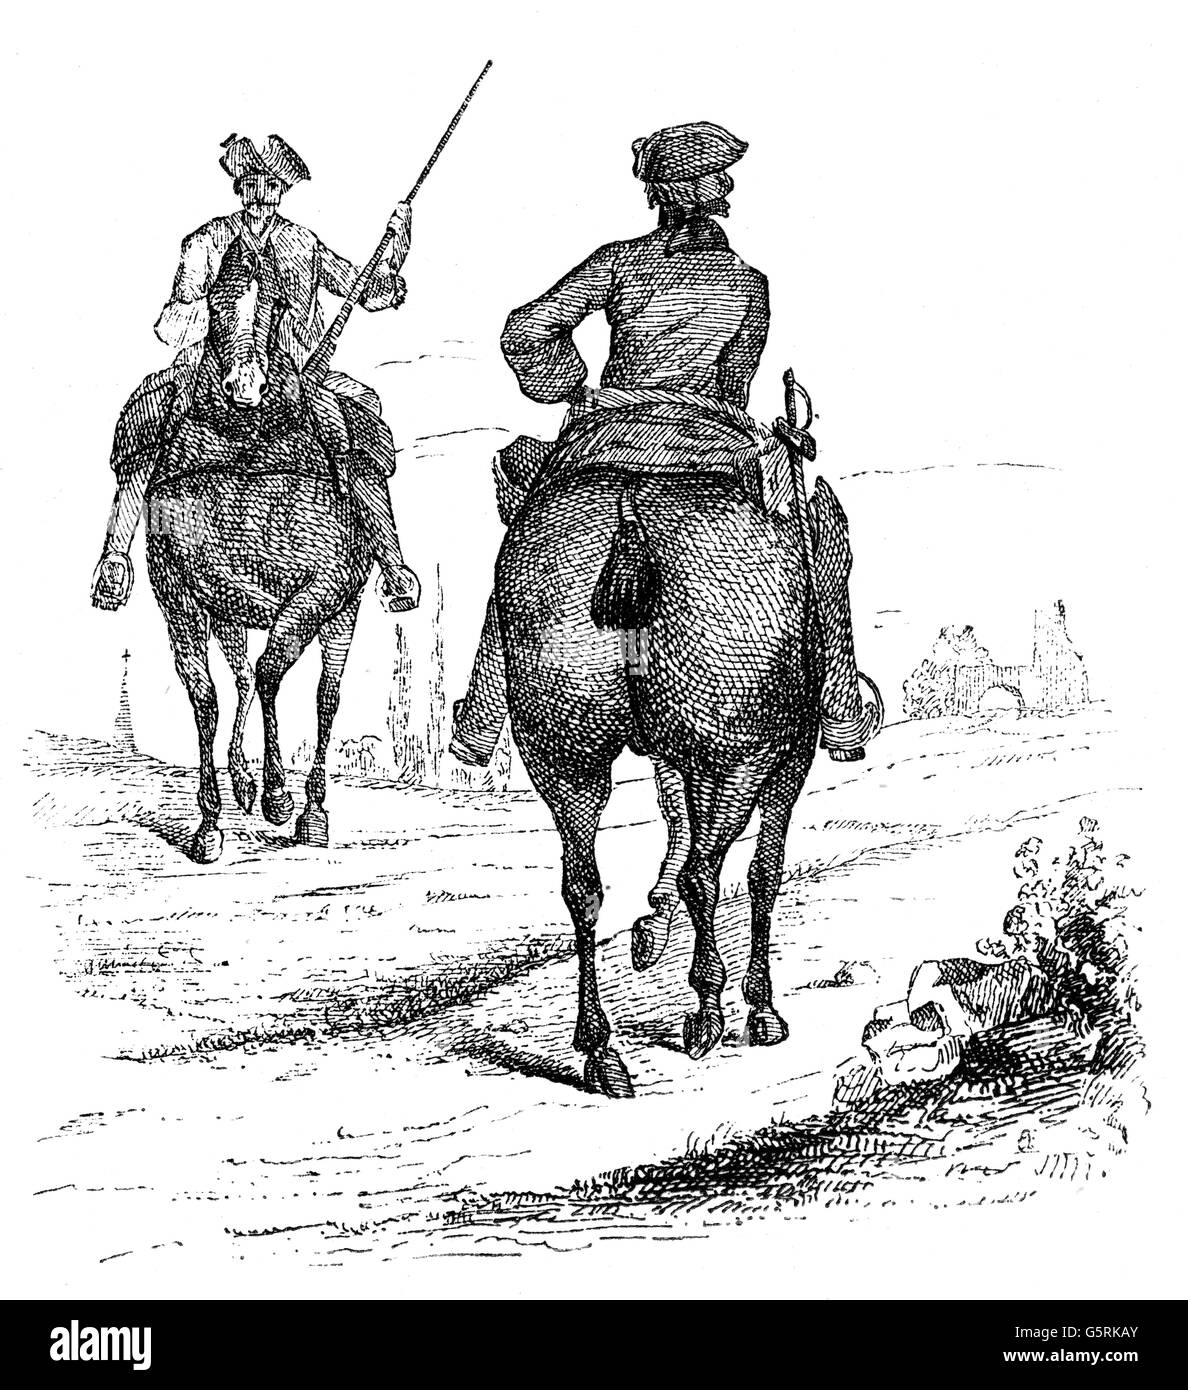 military, cavalry, French troopers, circa 1700, Additional-Rights-Clearences-NA - Stock Image